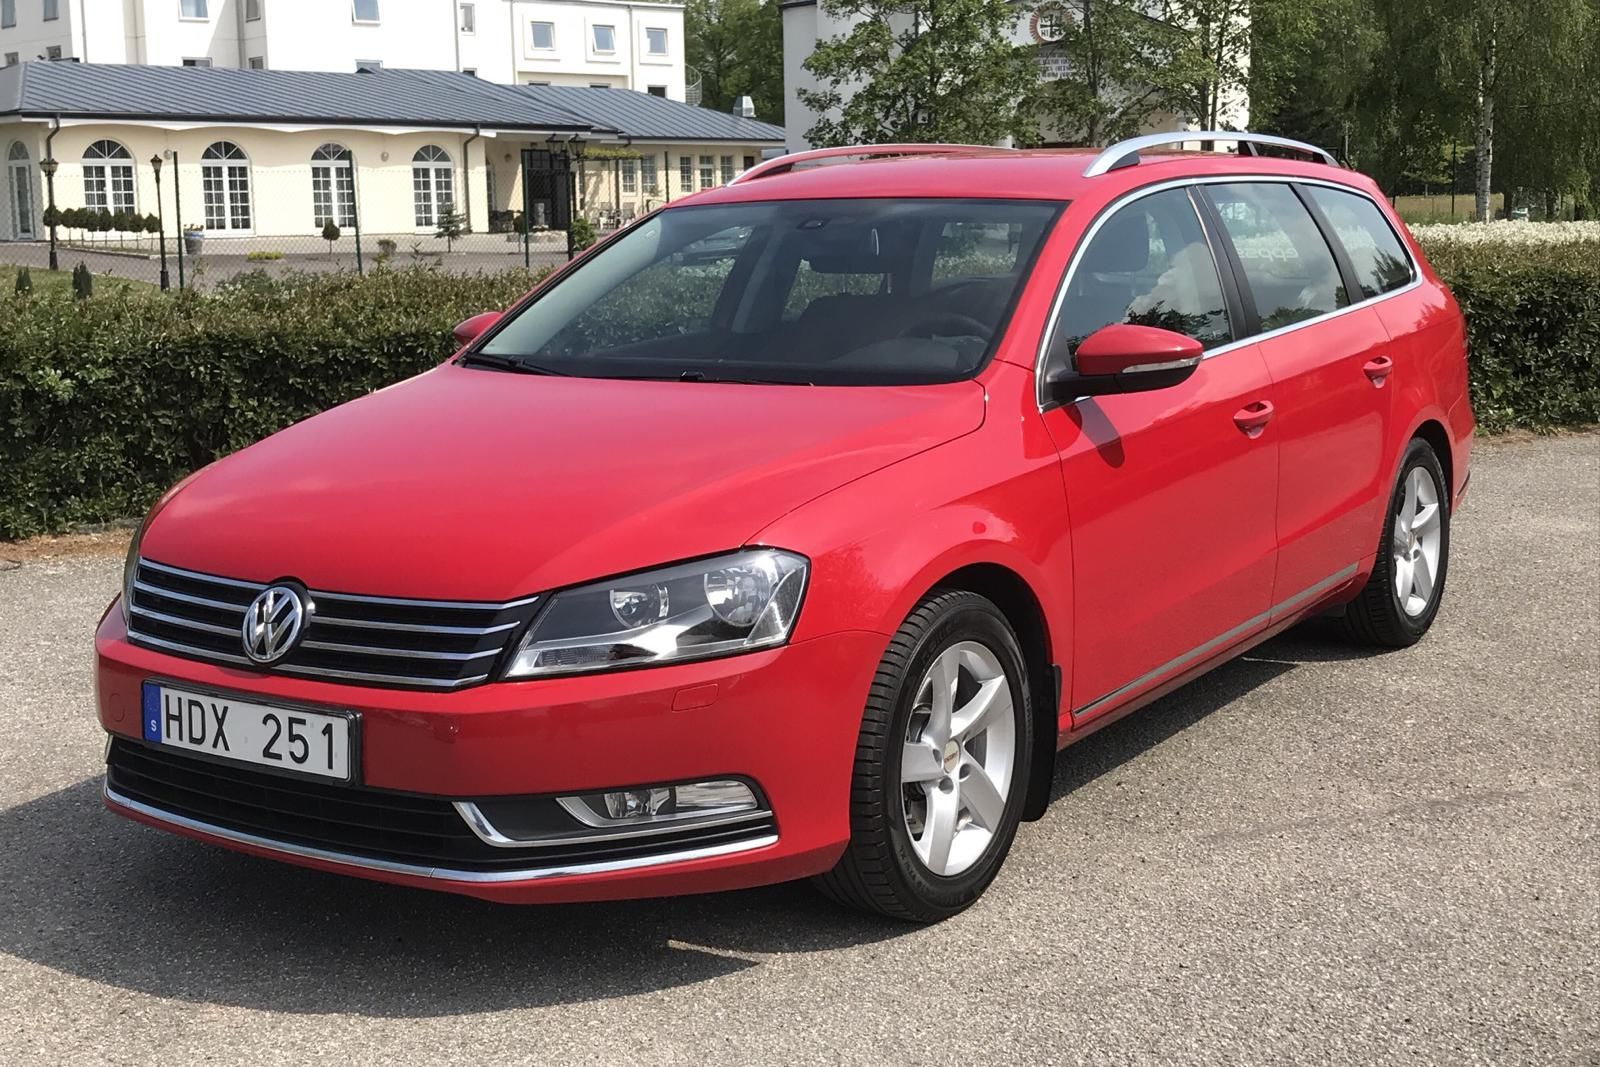 VW Passat 2.0 TDI BlueMotion Technologievariante (140 hk)